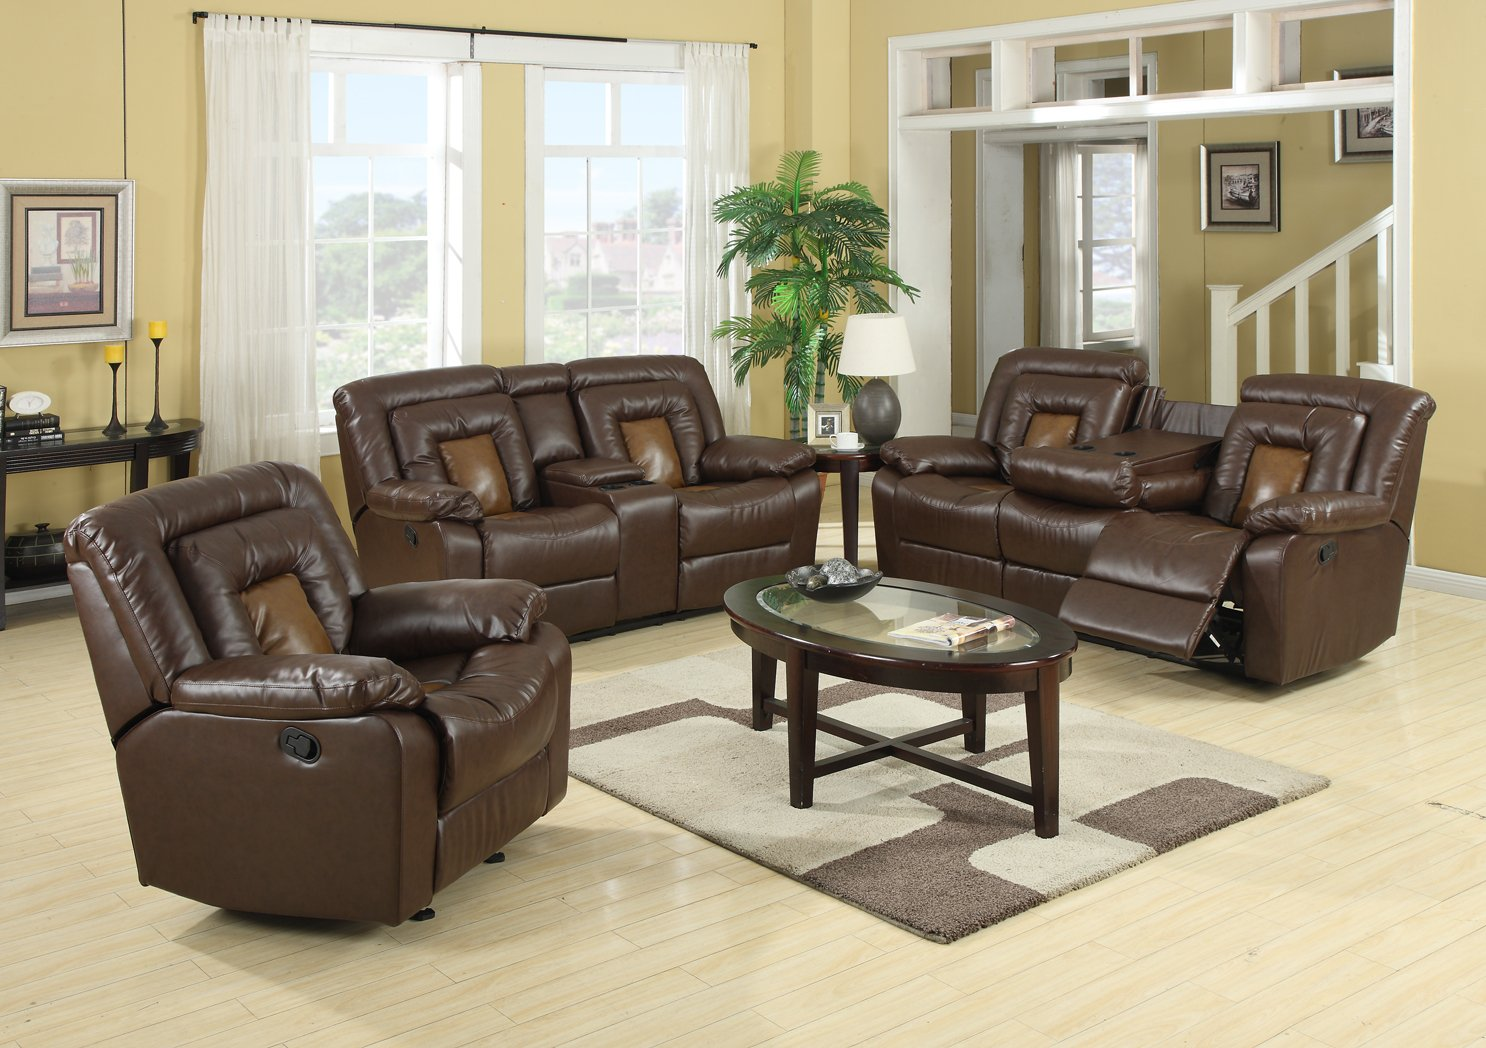 Amazon.com Roundhill Furniture Kmax 2-Toned Dual Reclining Sofa and Loveseat Set with Drop Console Kitchen u0026 Dining & Amazon.com: Roundhill Furniture Kmax 2-Toned Dual Reclining Sofa ... islam-shia.org